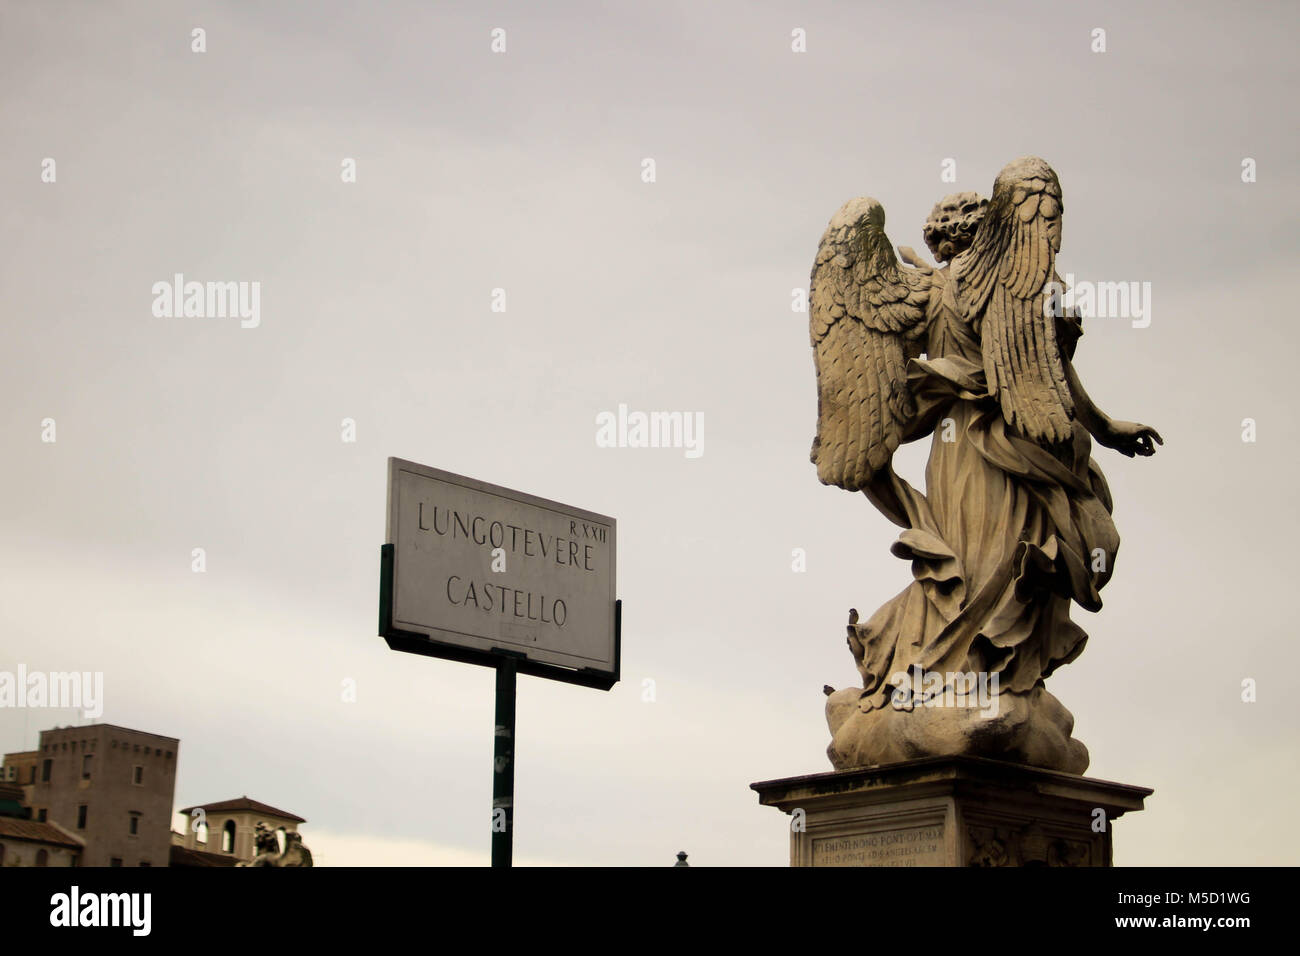 Lungotevere Castello Angel statue, in the Vatican City Rome Italy - Stock Image